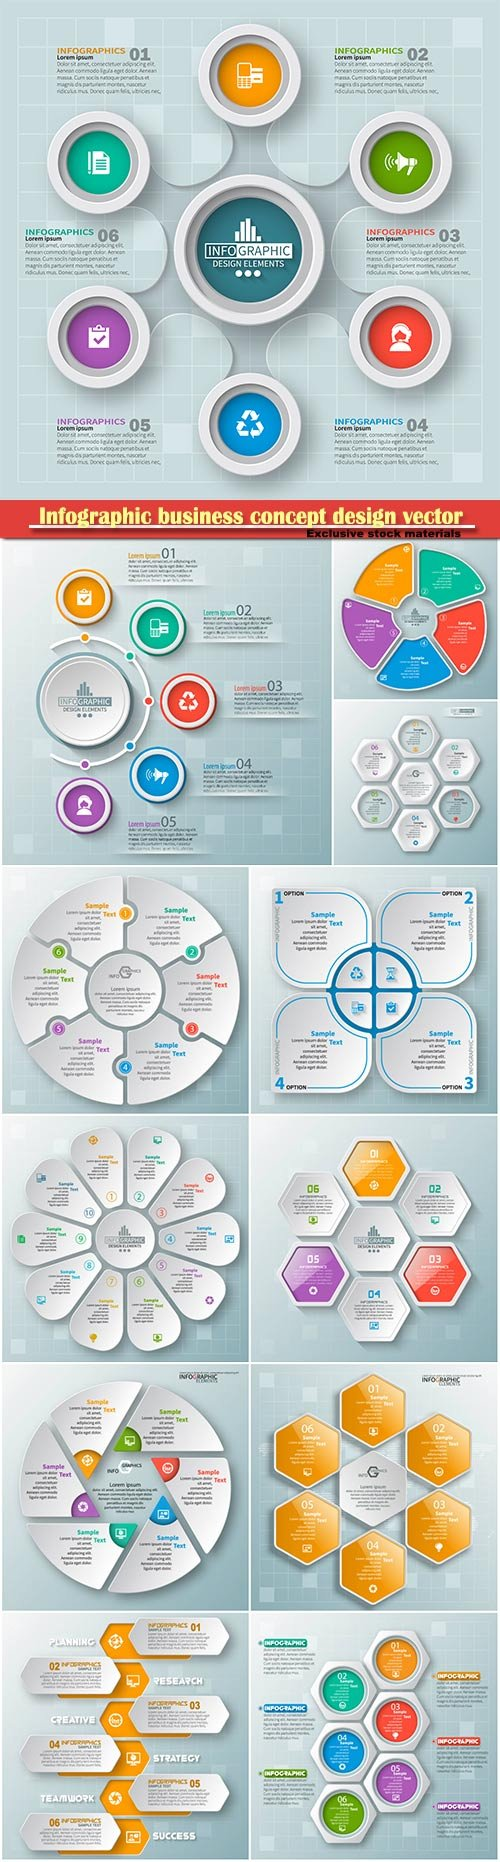 Infographic business concept design vector illustration # 3